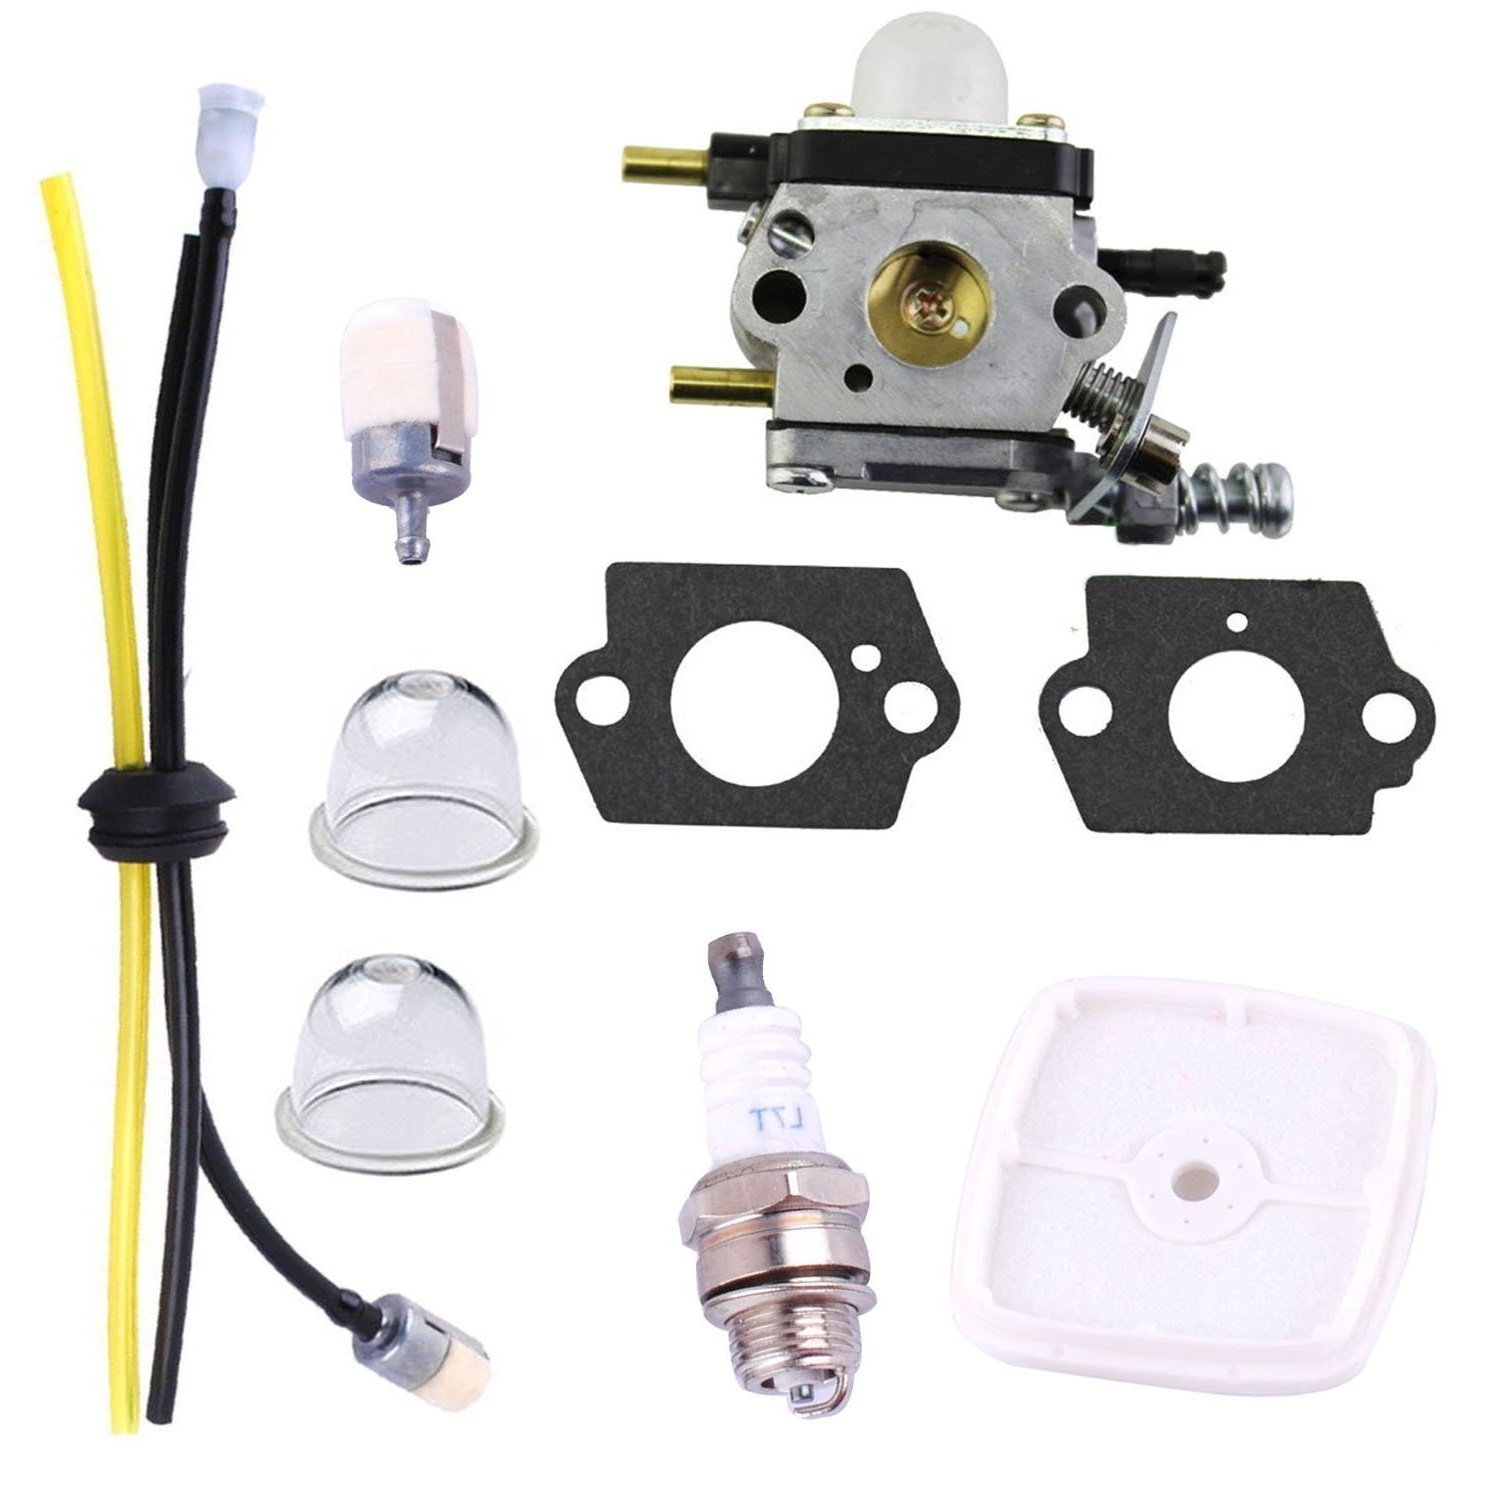 Tri-better C1U-K82 C1U-K54A Carburetor with Air Filter Repower Kit for Mantis Tiller Parts 7222 7225 7222M 7234 7240 7920 7924 Tiller/Cultivator Carb